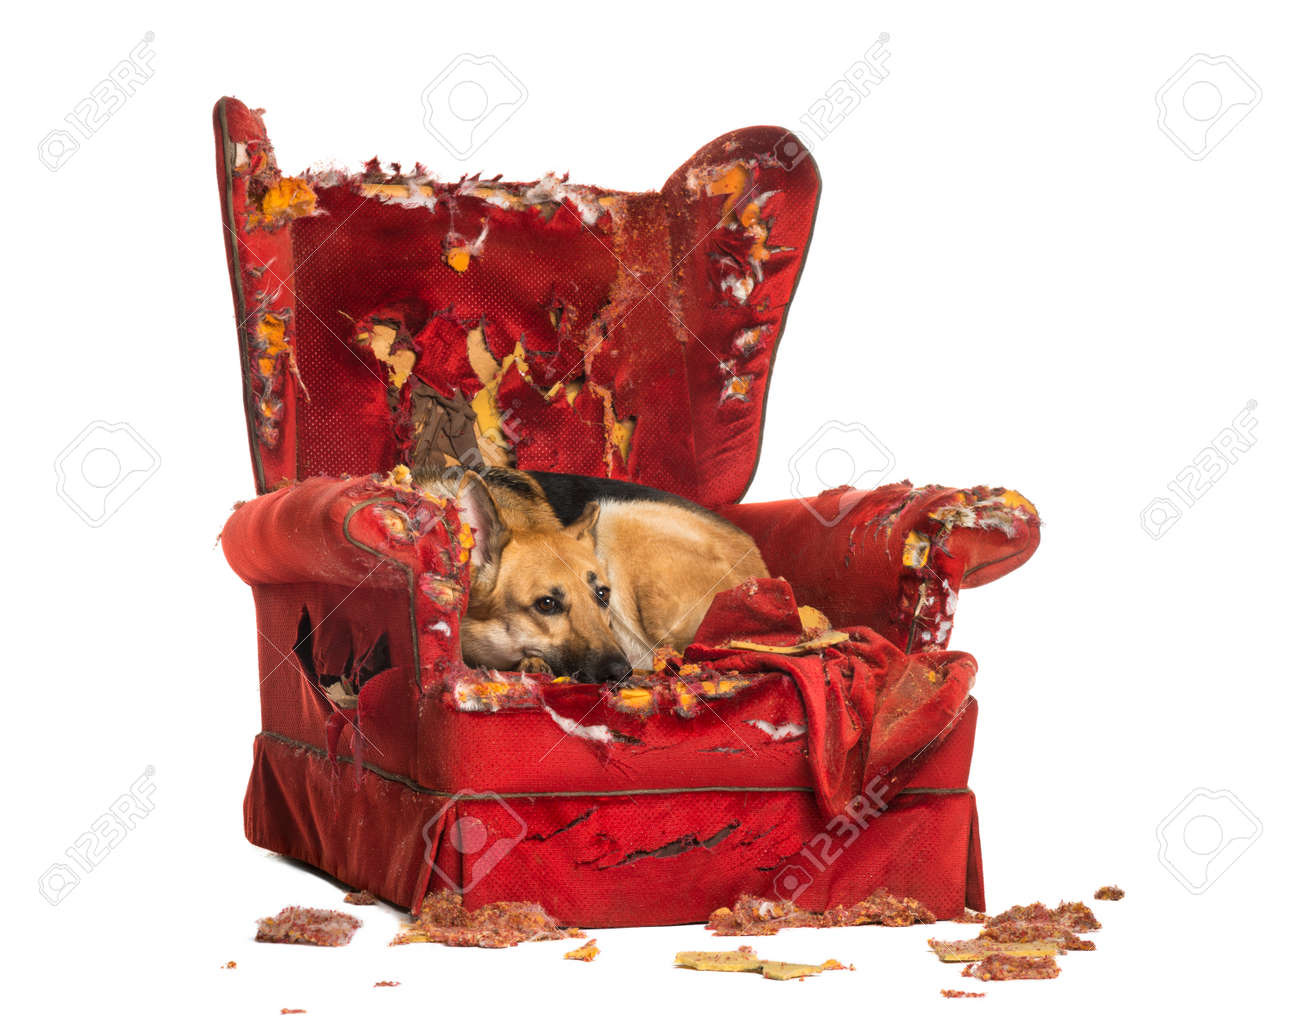 German Sheperd looking dipressed on a destroyed armchair, isolated on white - 22728303